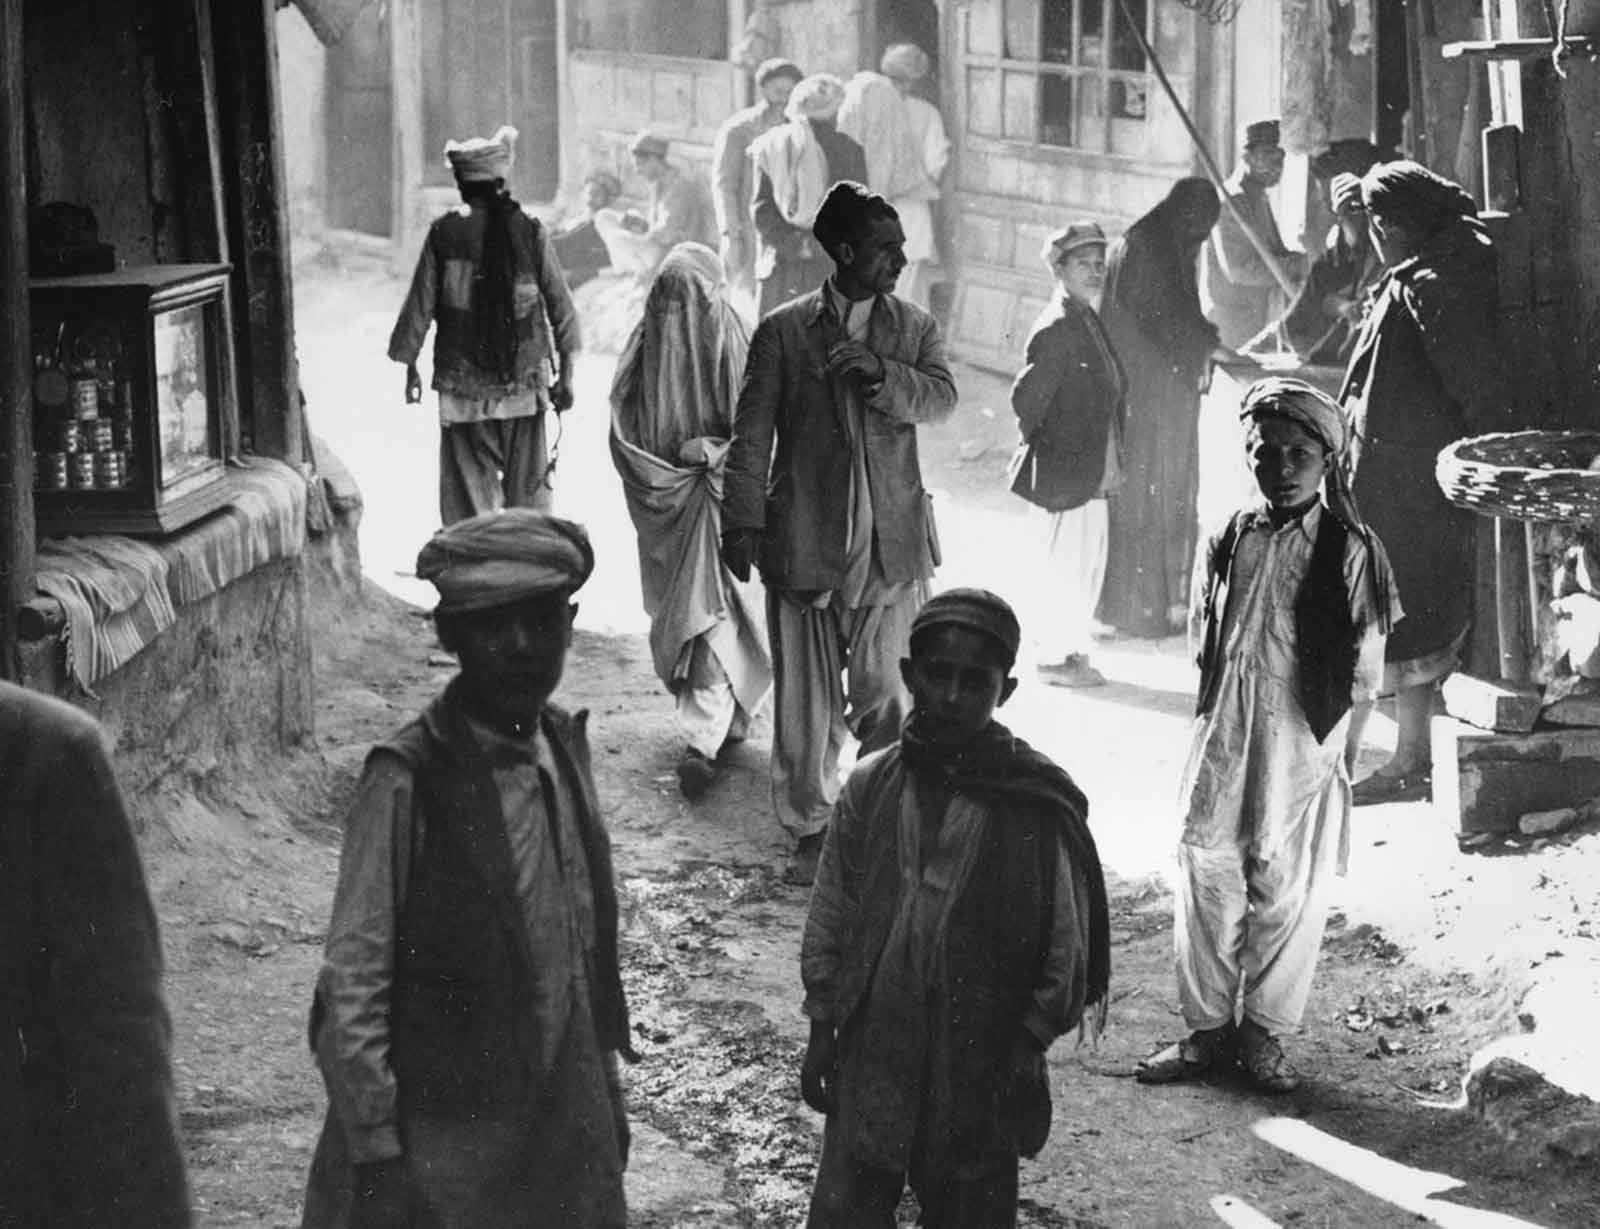 Afghan boys, men, and a woman walk through a street in Kabul, Afghanistan, on March 26, 1954.